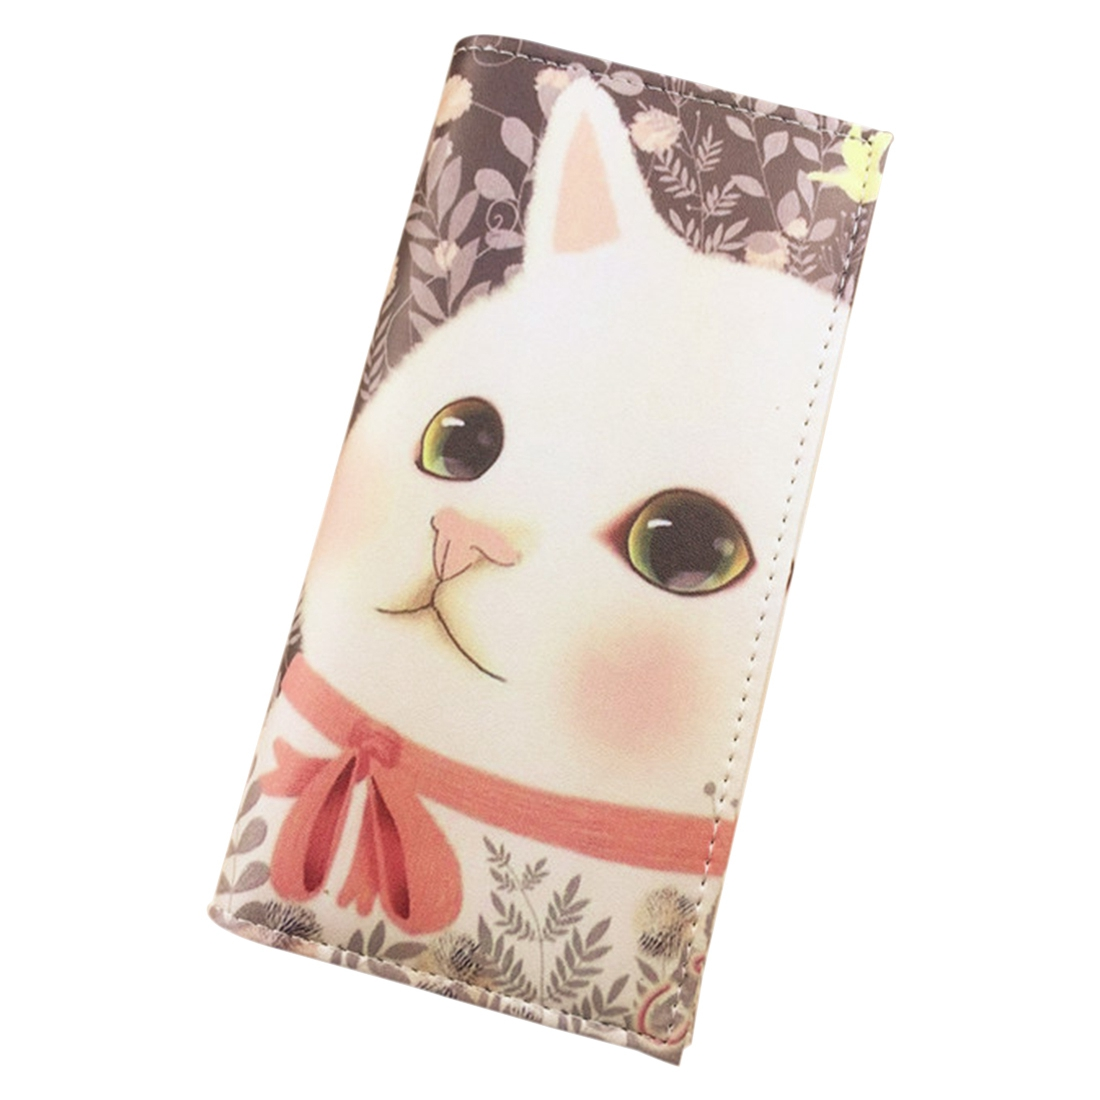 Female Purse Cartoon Pussy Cat Women Printed Wallets wiggle and giggle pussy cat pussy cat what can you see